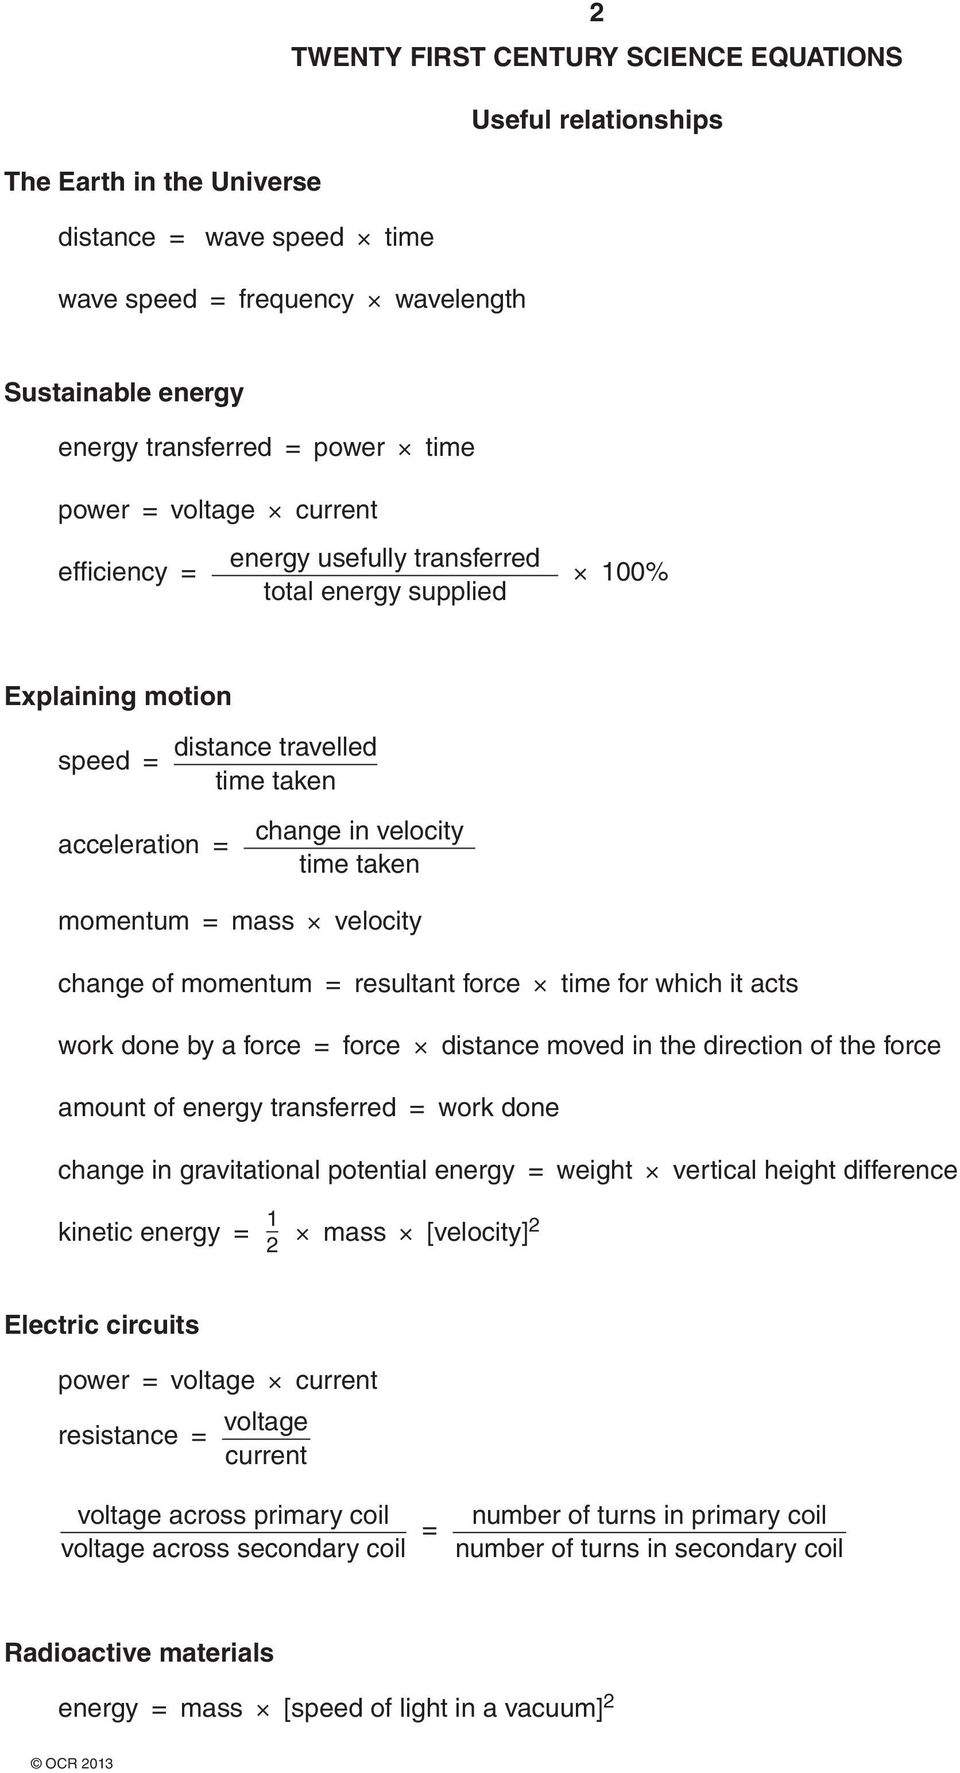 momentum = mass velocity change of momentum = resultant force time for which it acts work done by a force = force distance moved in the direction of the force amount of energy transferred = work done